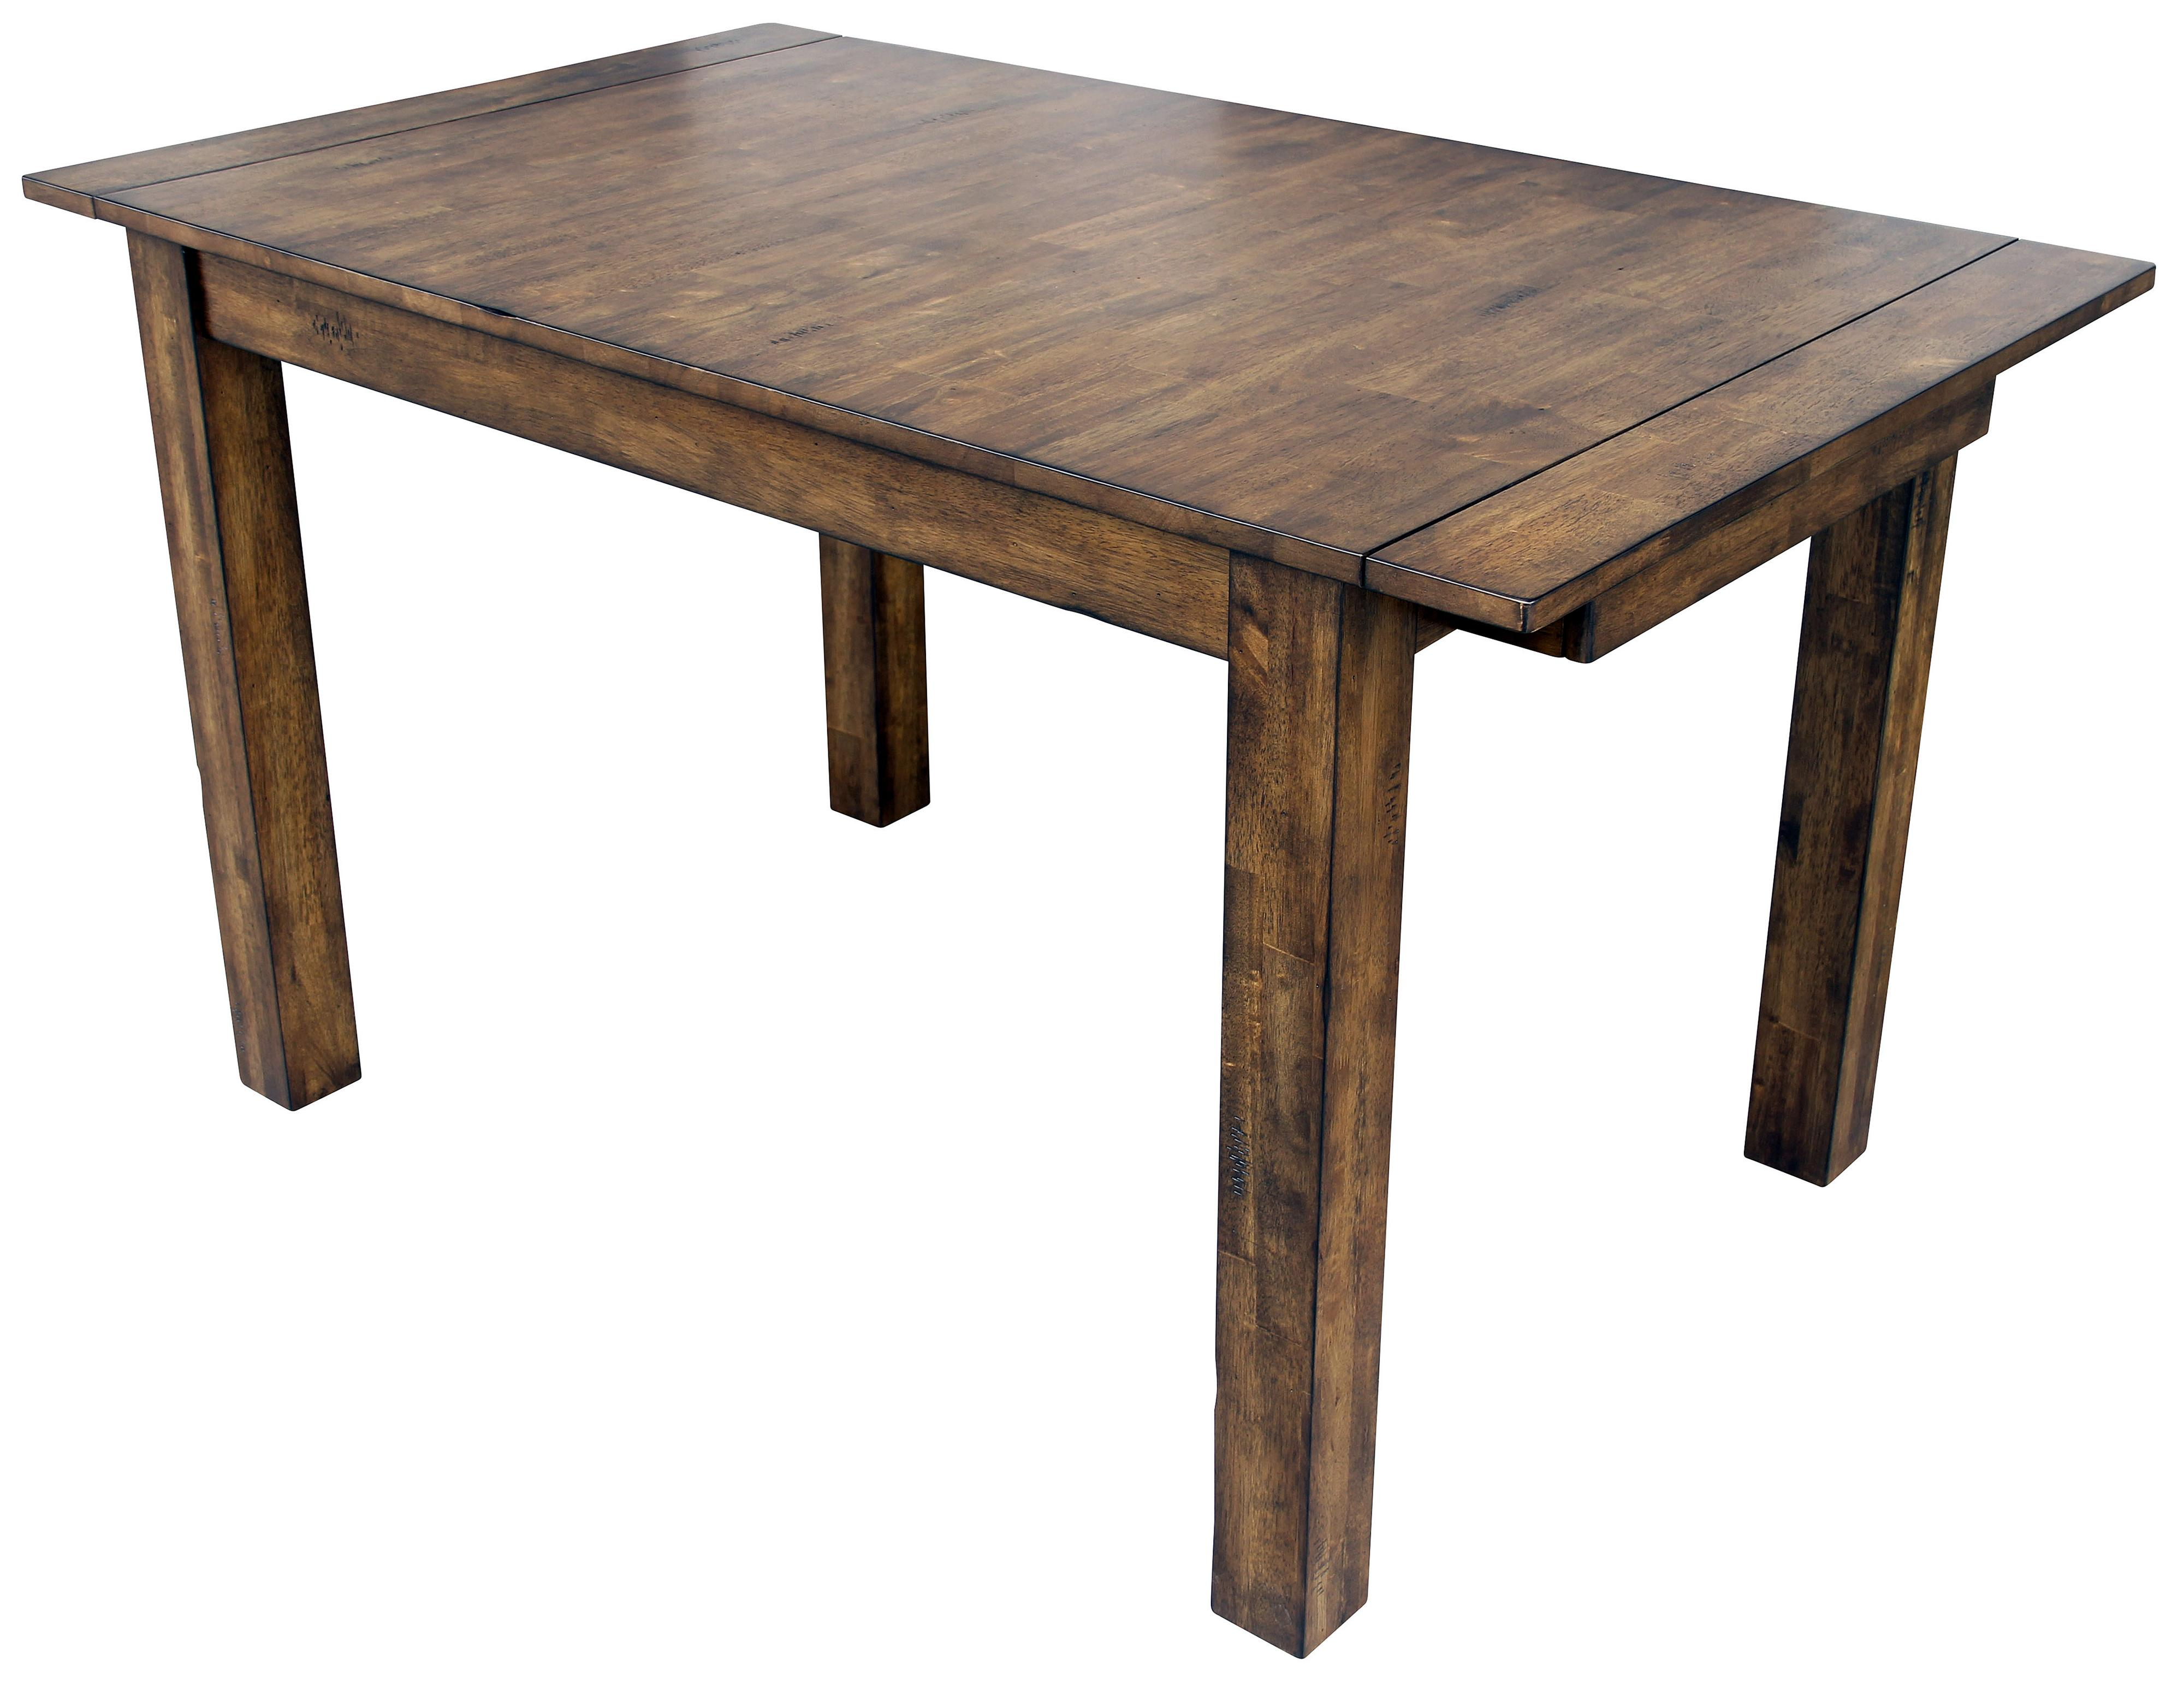 Mariposa Dining Leg Table by AAmerica at Darvin Furniture